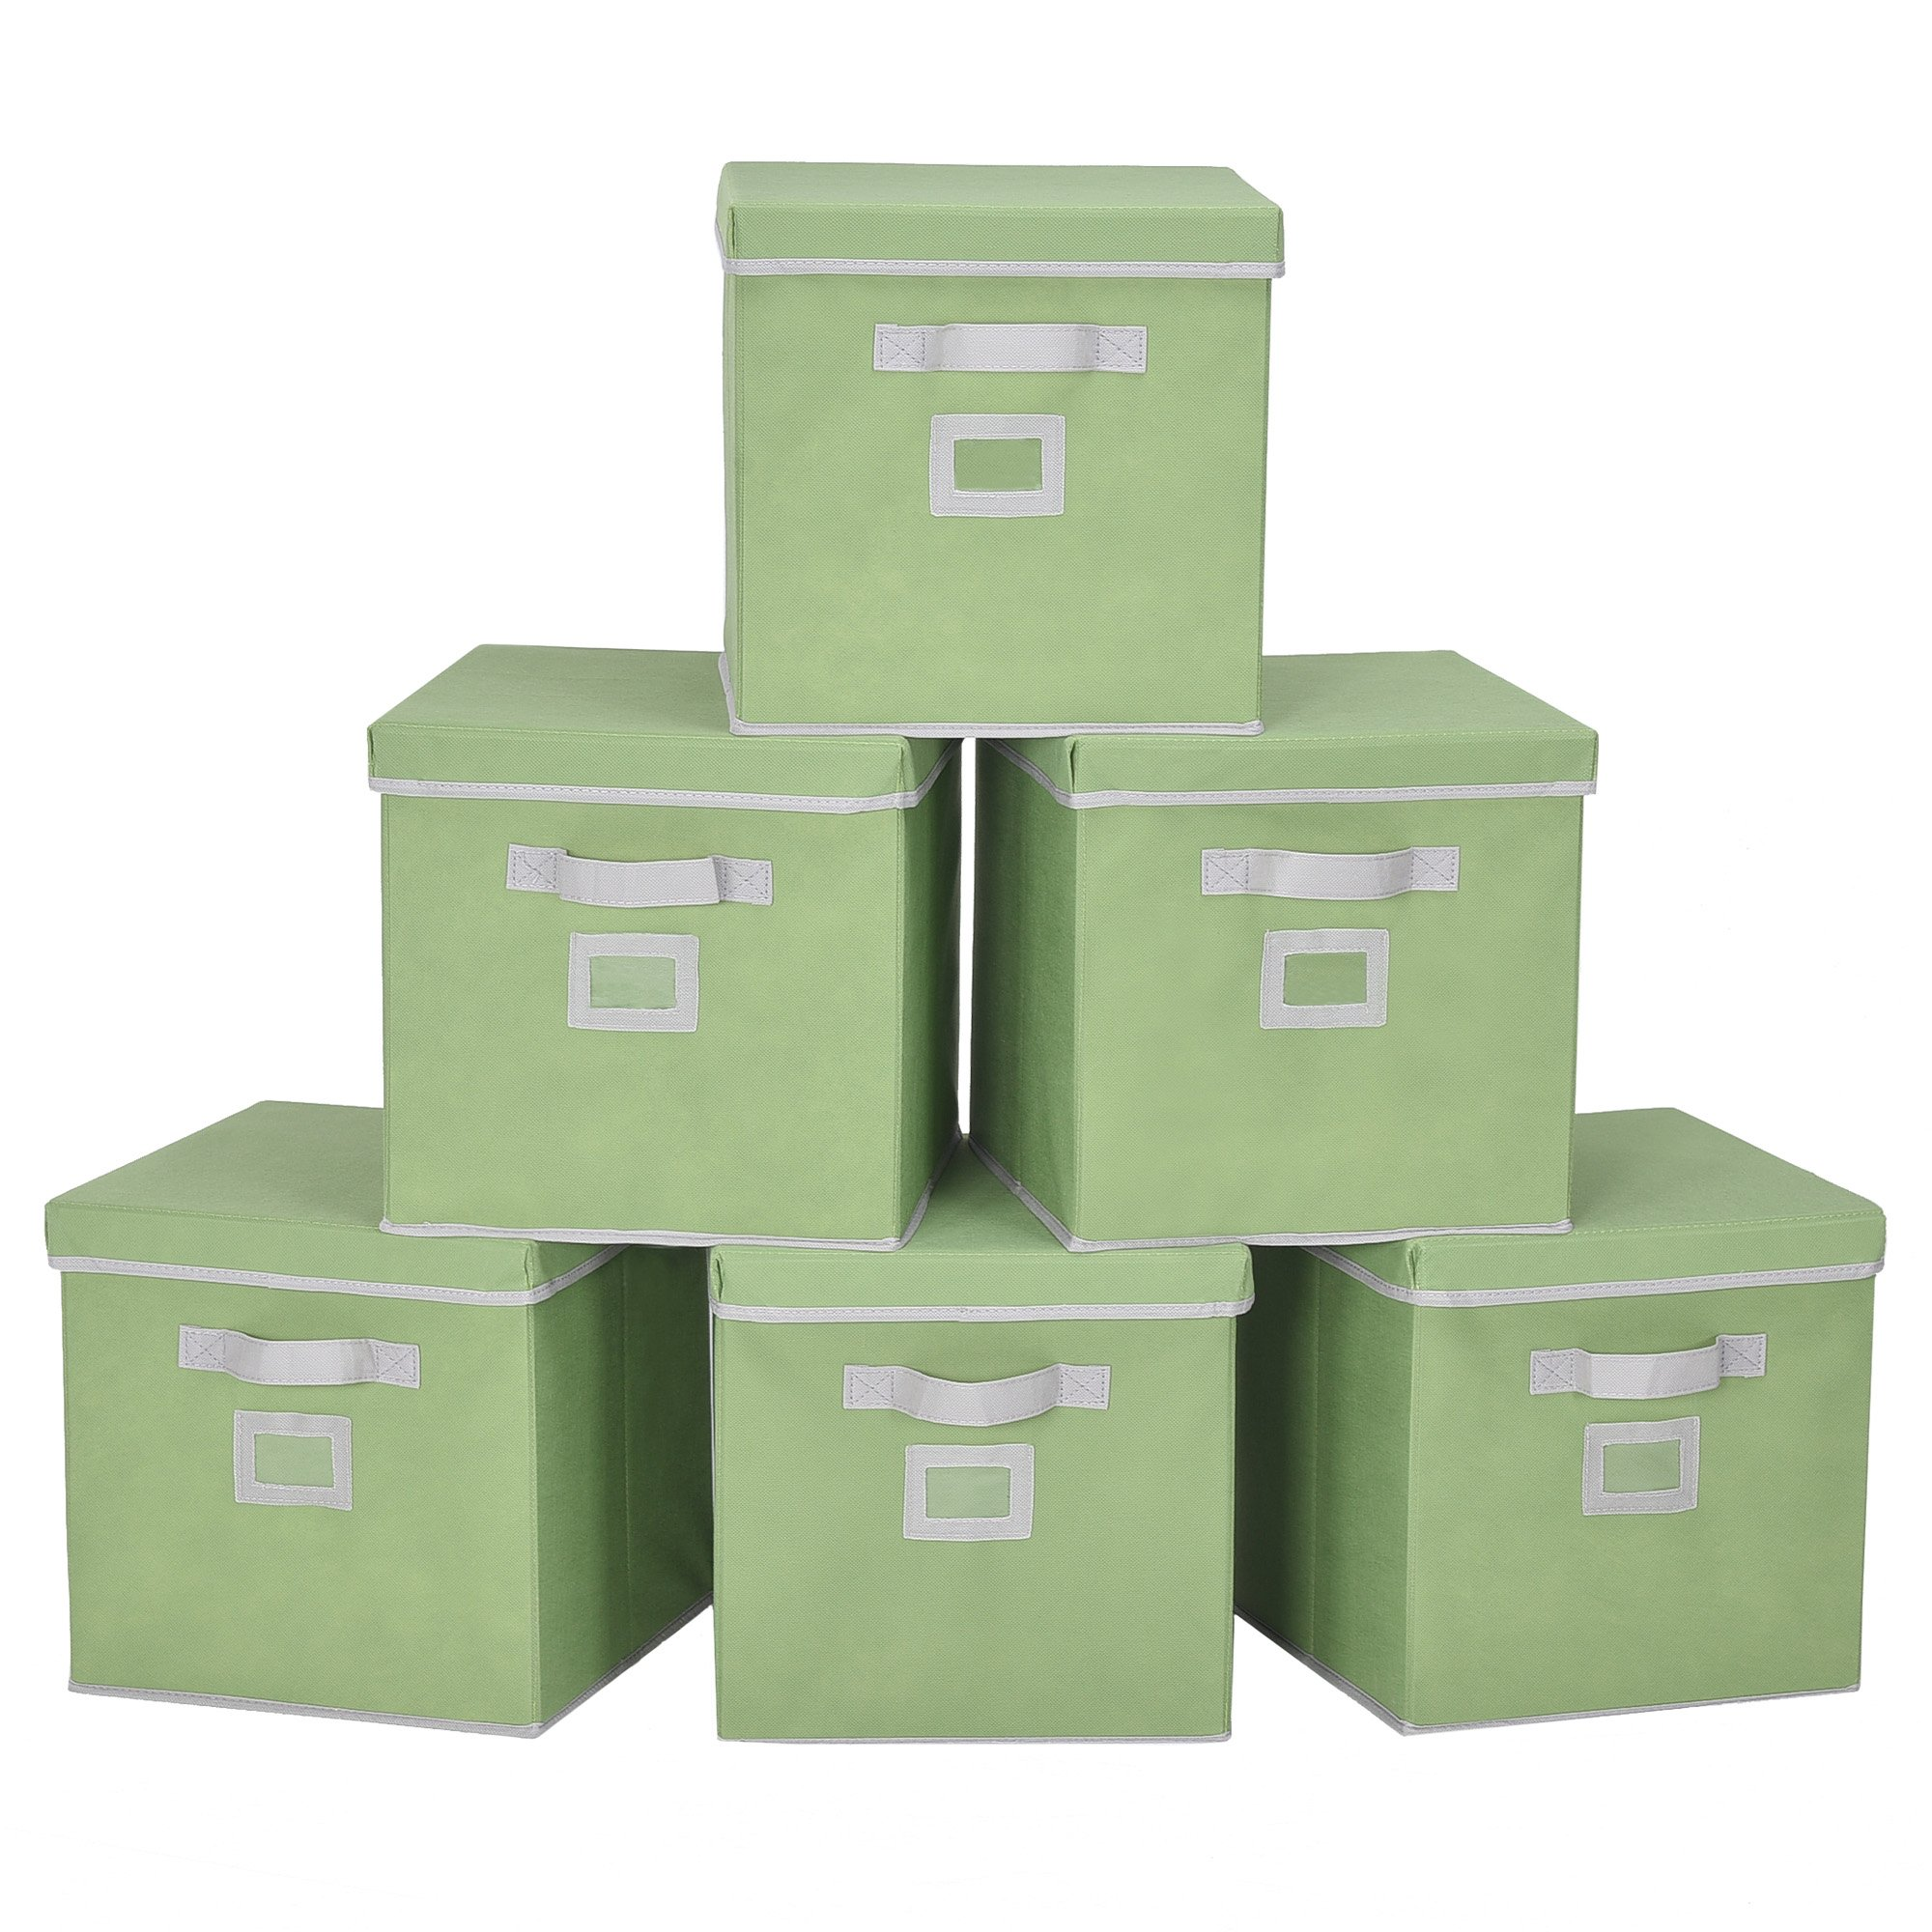 StorageWorks Storage Cube Box With Lid, Fabric Storage Bin By, Green, Large, 6-Pack, 11.8x11.8x11.8 inches by StorageWorks